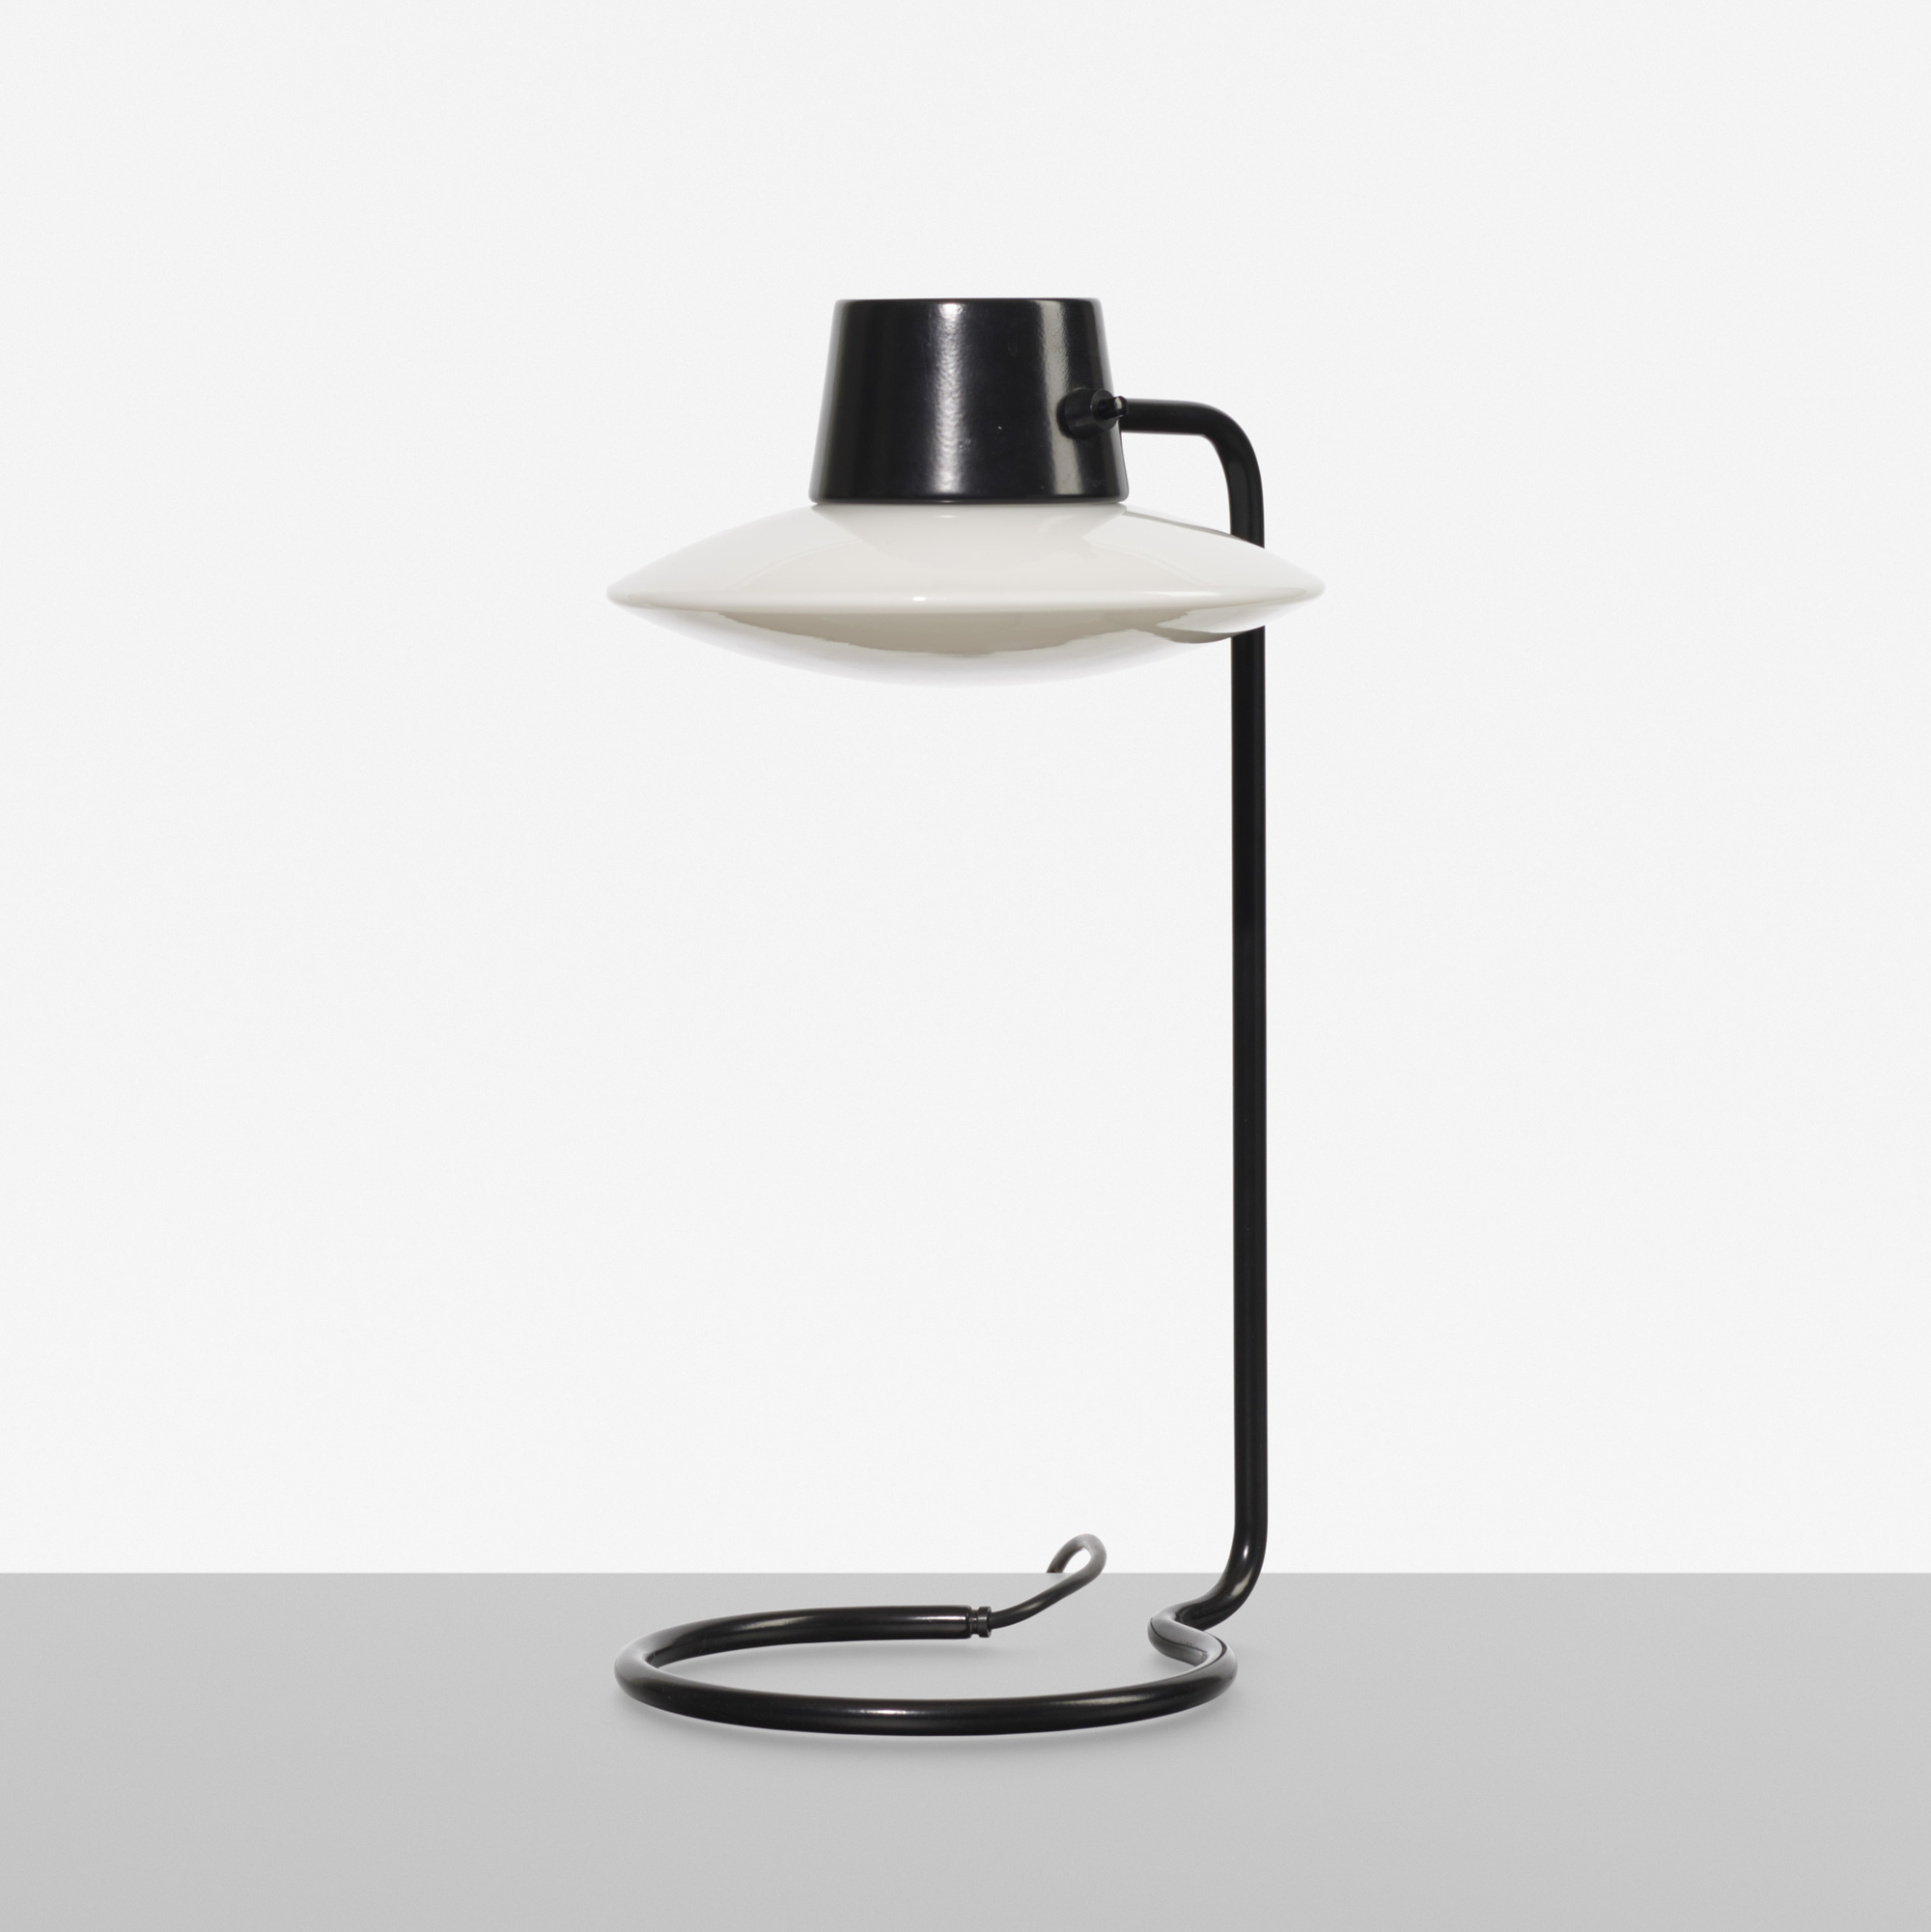 172: Arne Jacobsen / Oxford table lamp (1 of 1)